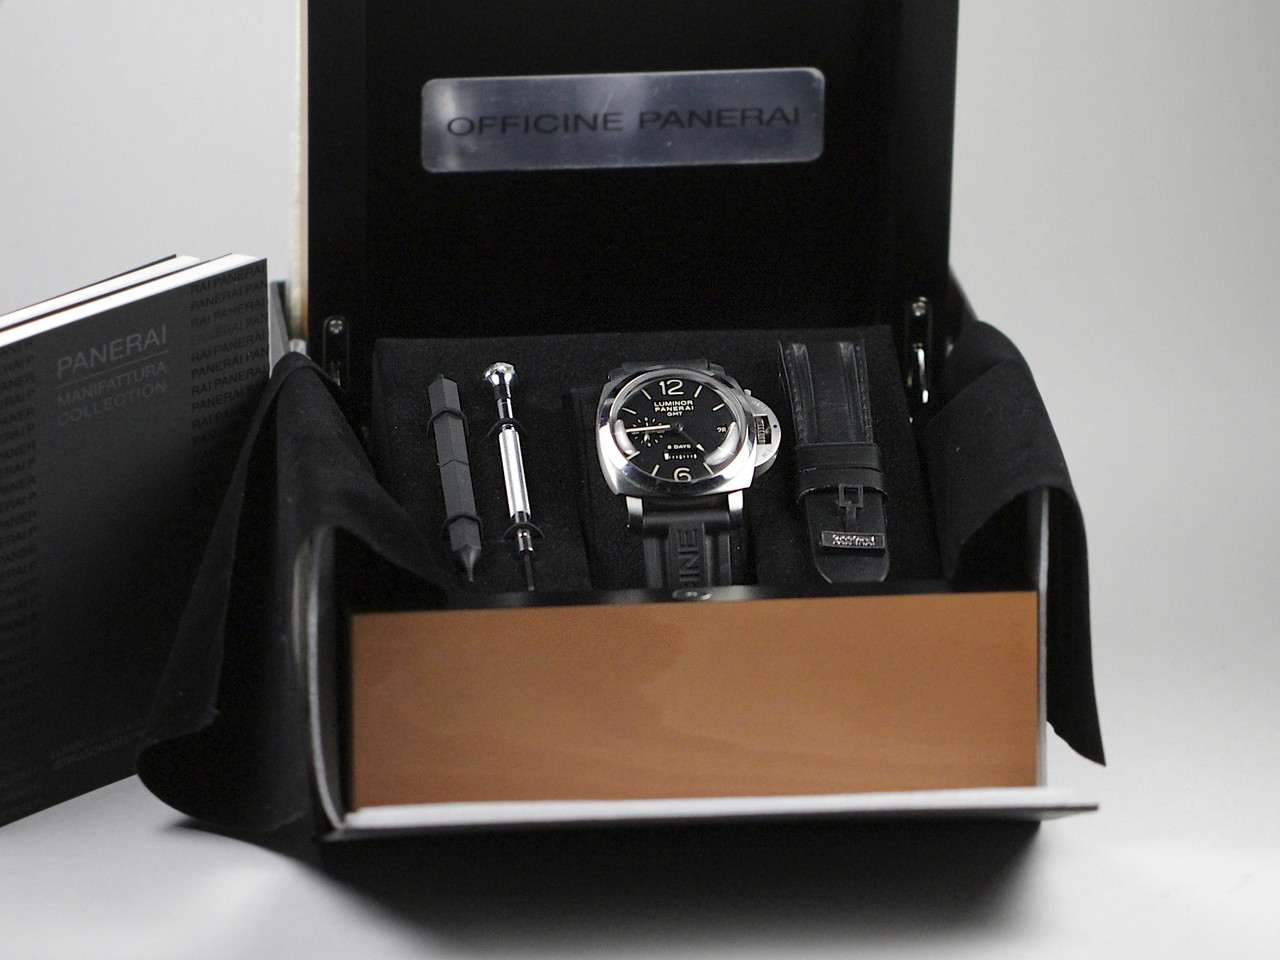 Complete Double Boxed - Pre-Owned Panerai Watch - Luminor 1950 8 Days GMT Acciaio PAM00233 - for sale online and instore Legend of Time - Chicago Watch Center